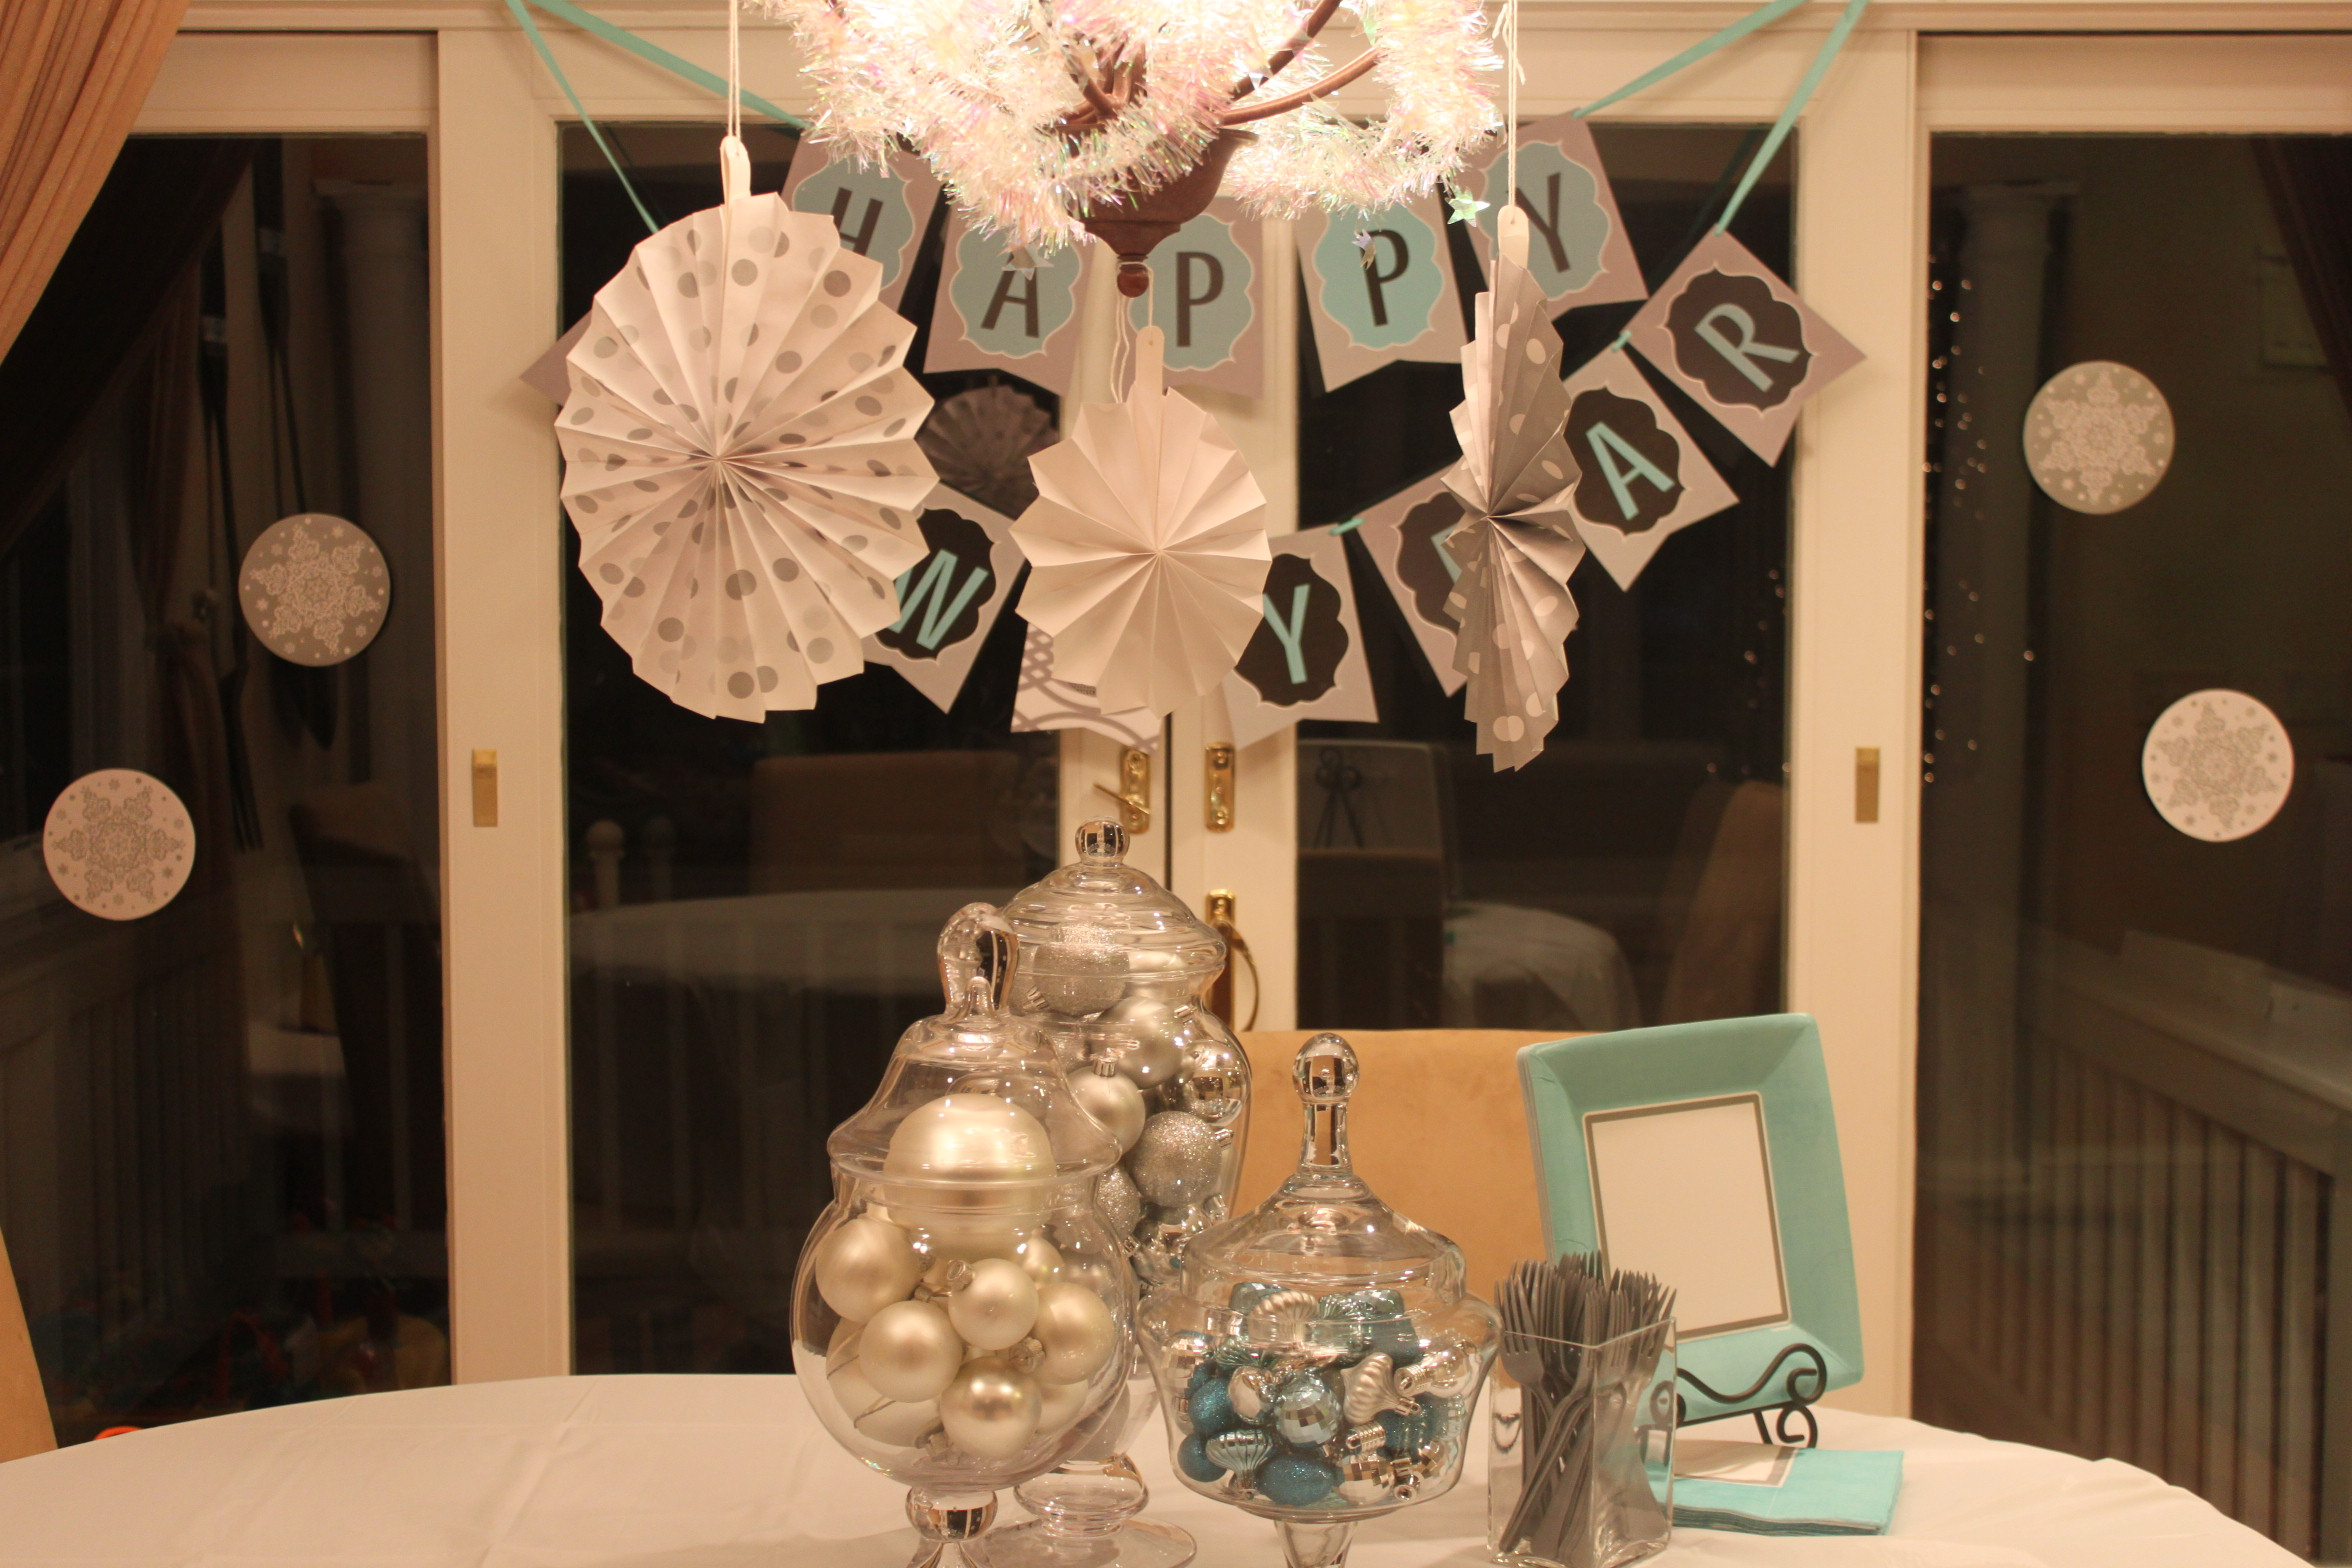 new years eve party decor ideas - HD2352×1568